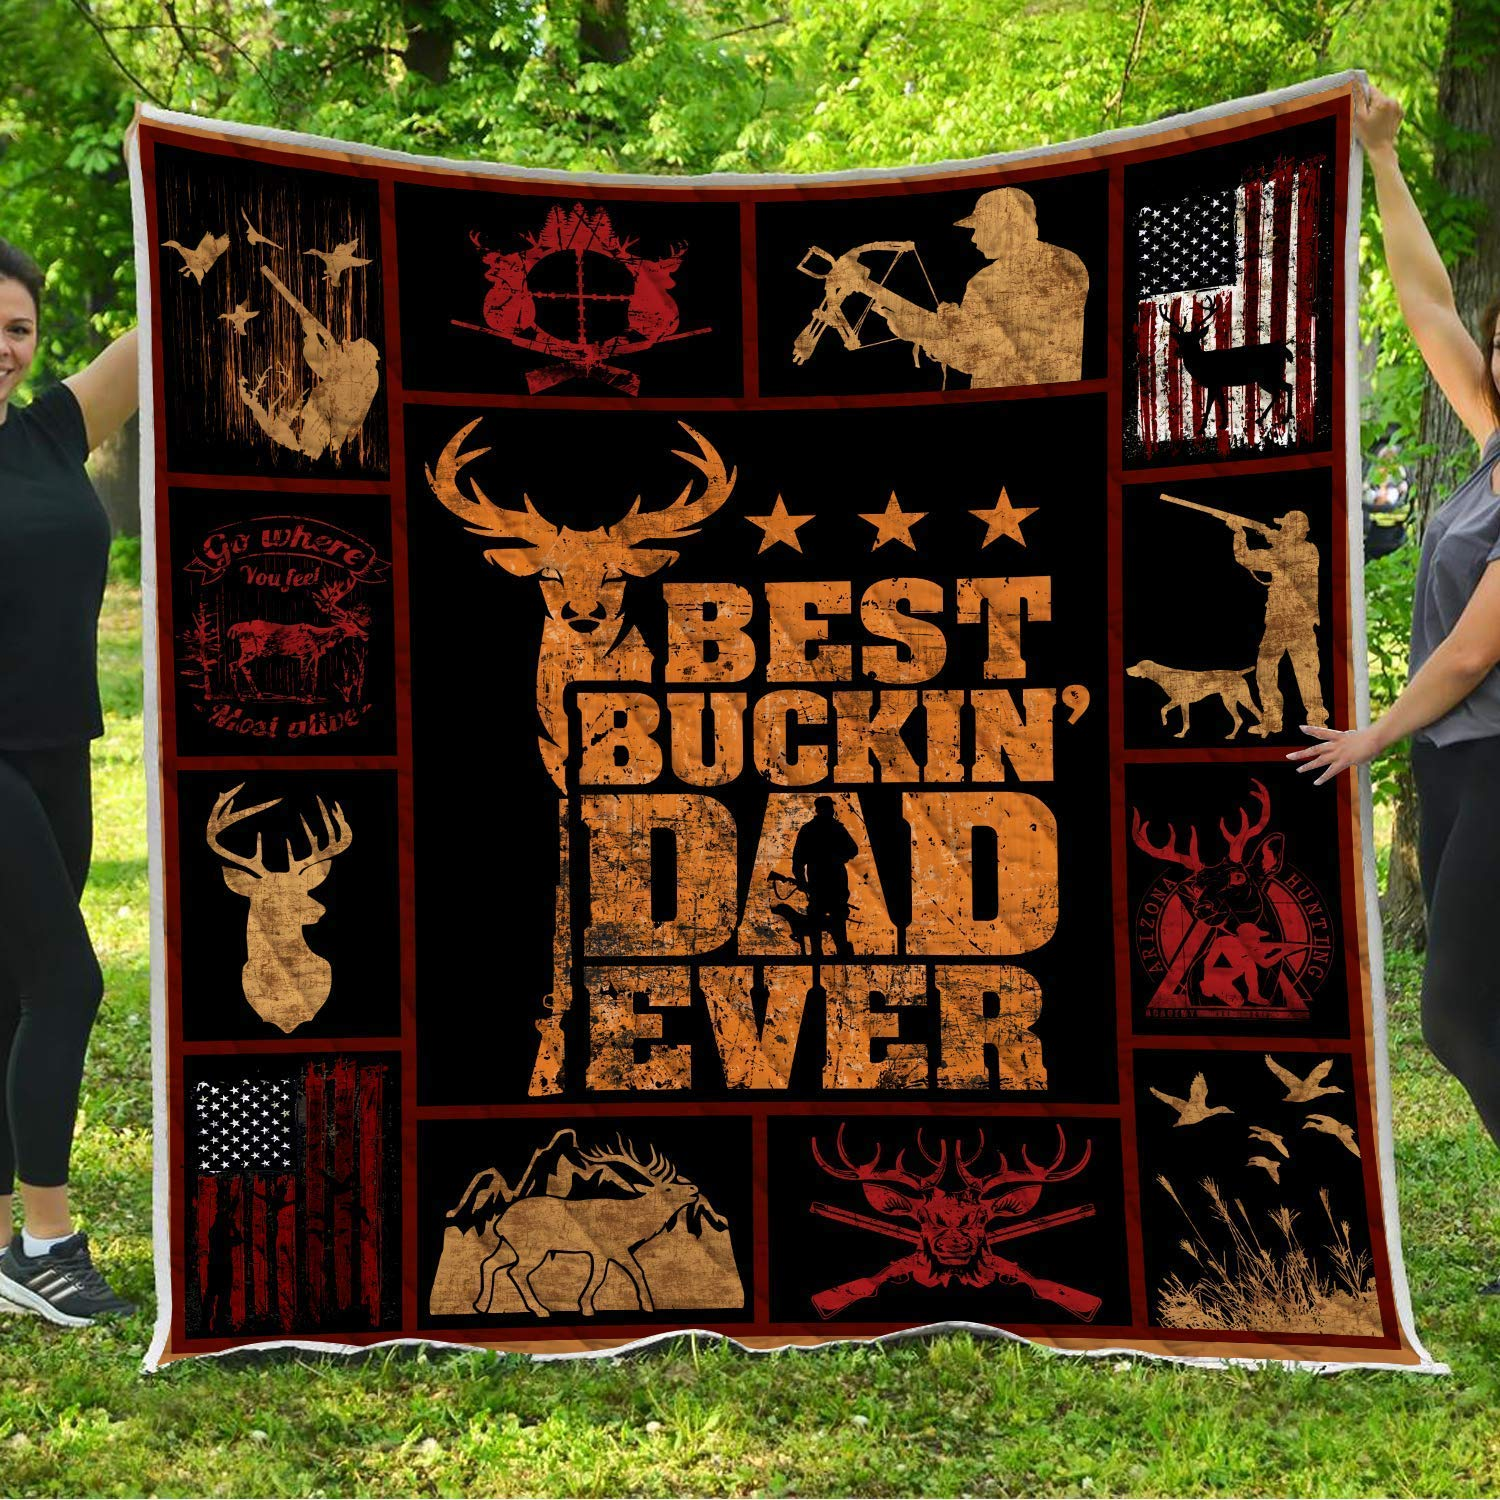 Best Buckin Dad Ever Quilt Pattern Blanket Comforters with Reversible Cotton King Queen Full Twin Size Quilted Hunting Birthday Christmas Gifts for Daddy Father Hunters from Kids Son Daughter Wife